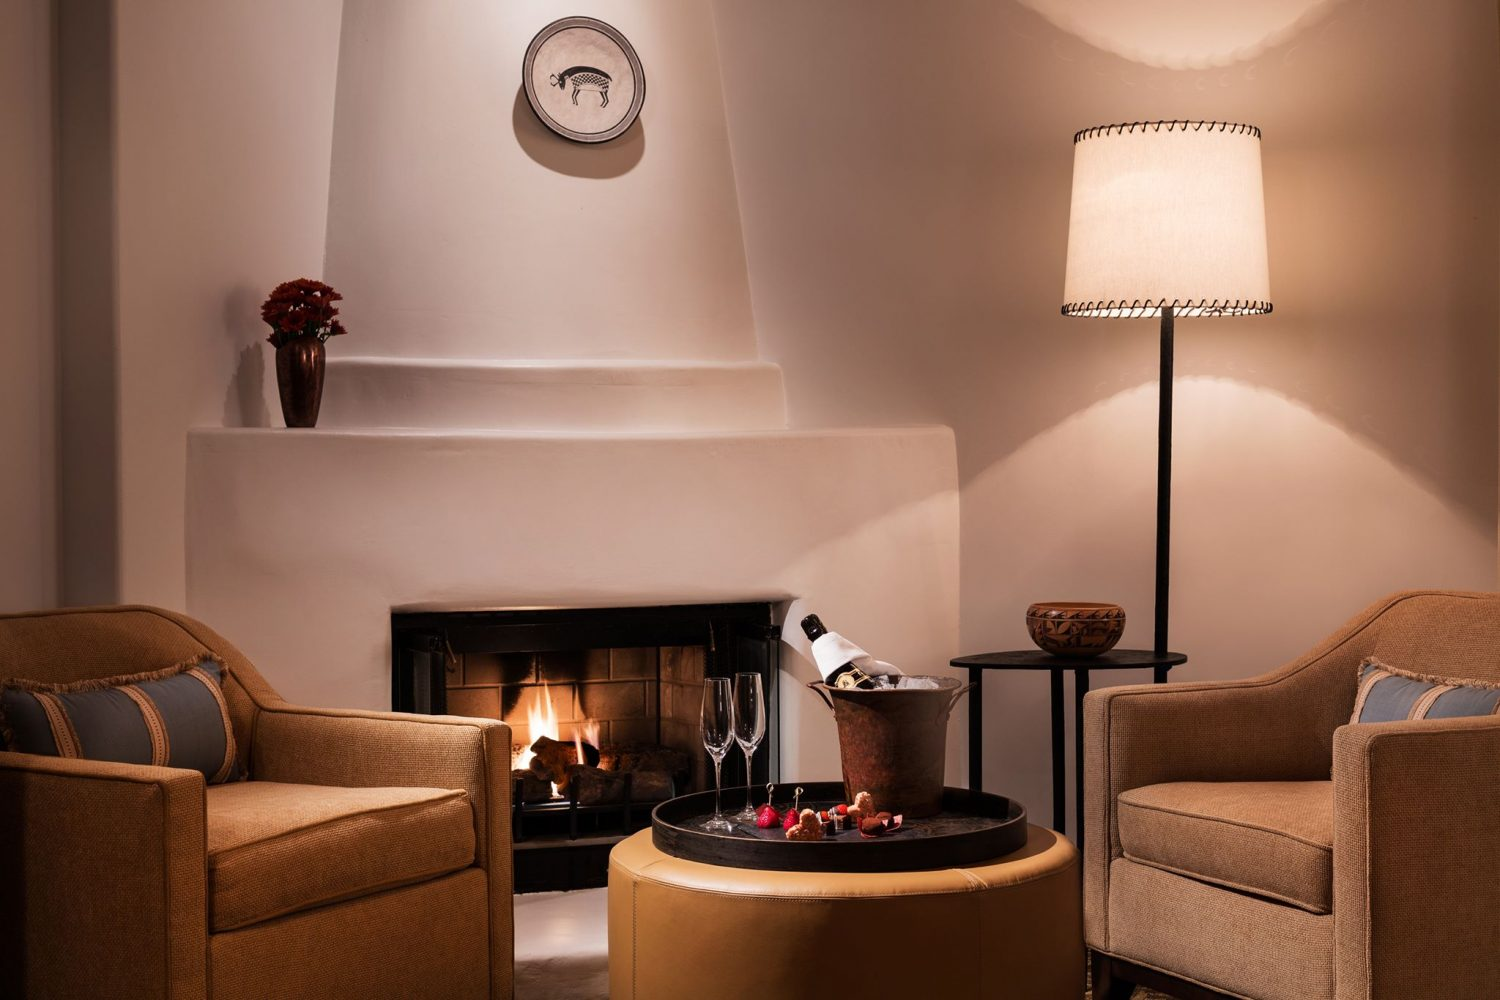 Rosewood inn of the anasazi unveils new luxury guestrooms for Kiva fireplaces